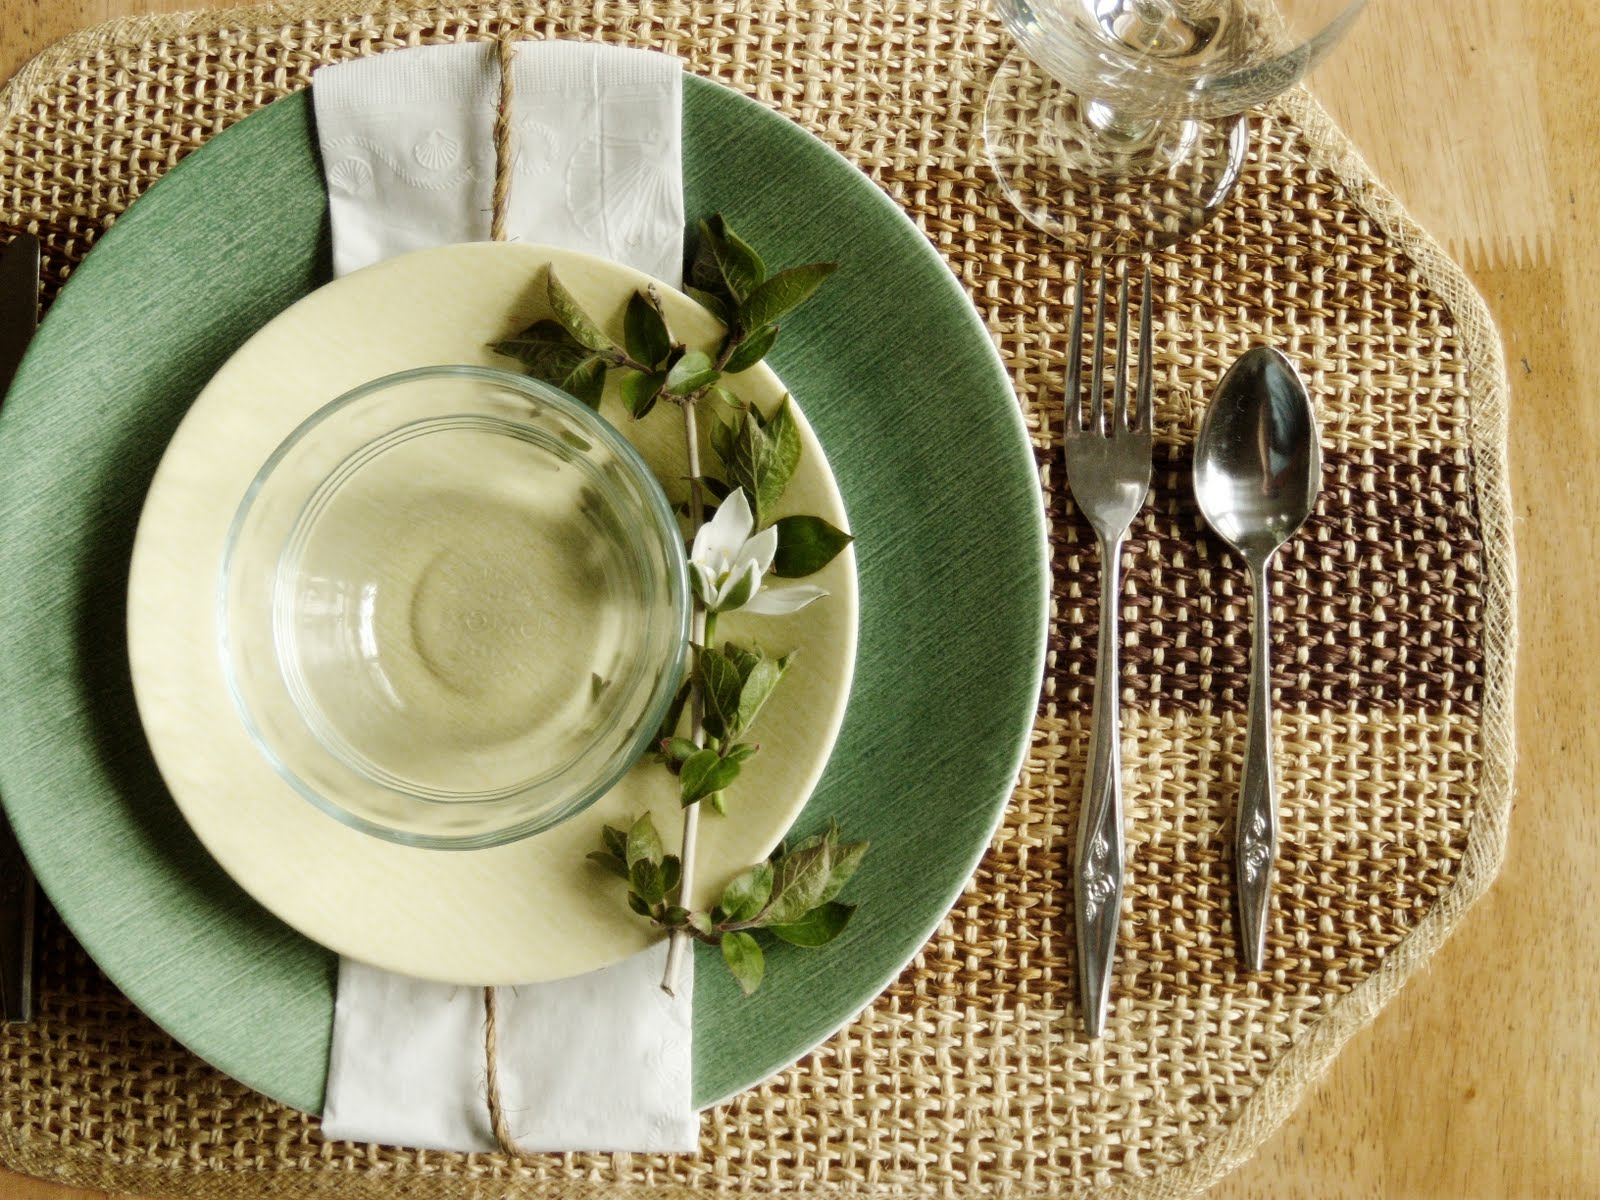 & Down on Sanford: Spring Table Setting